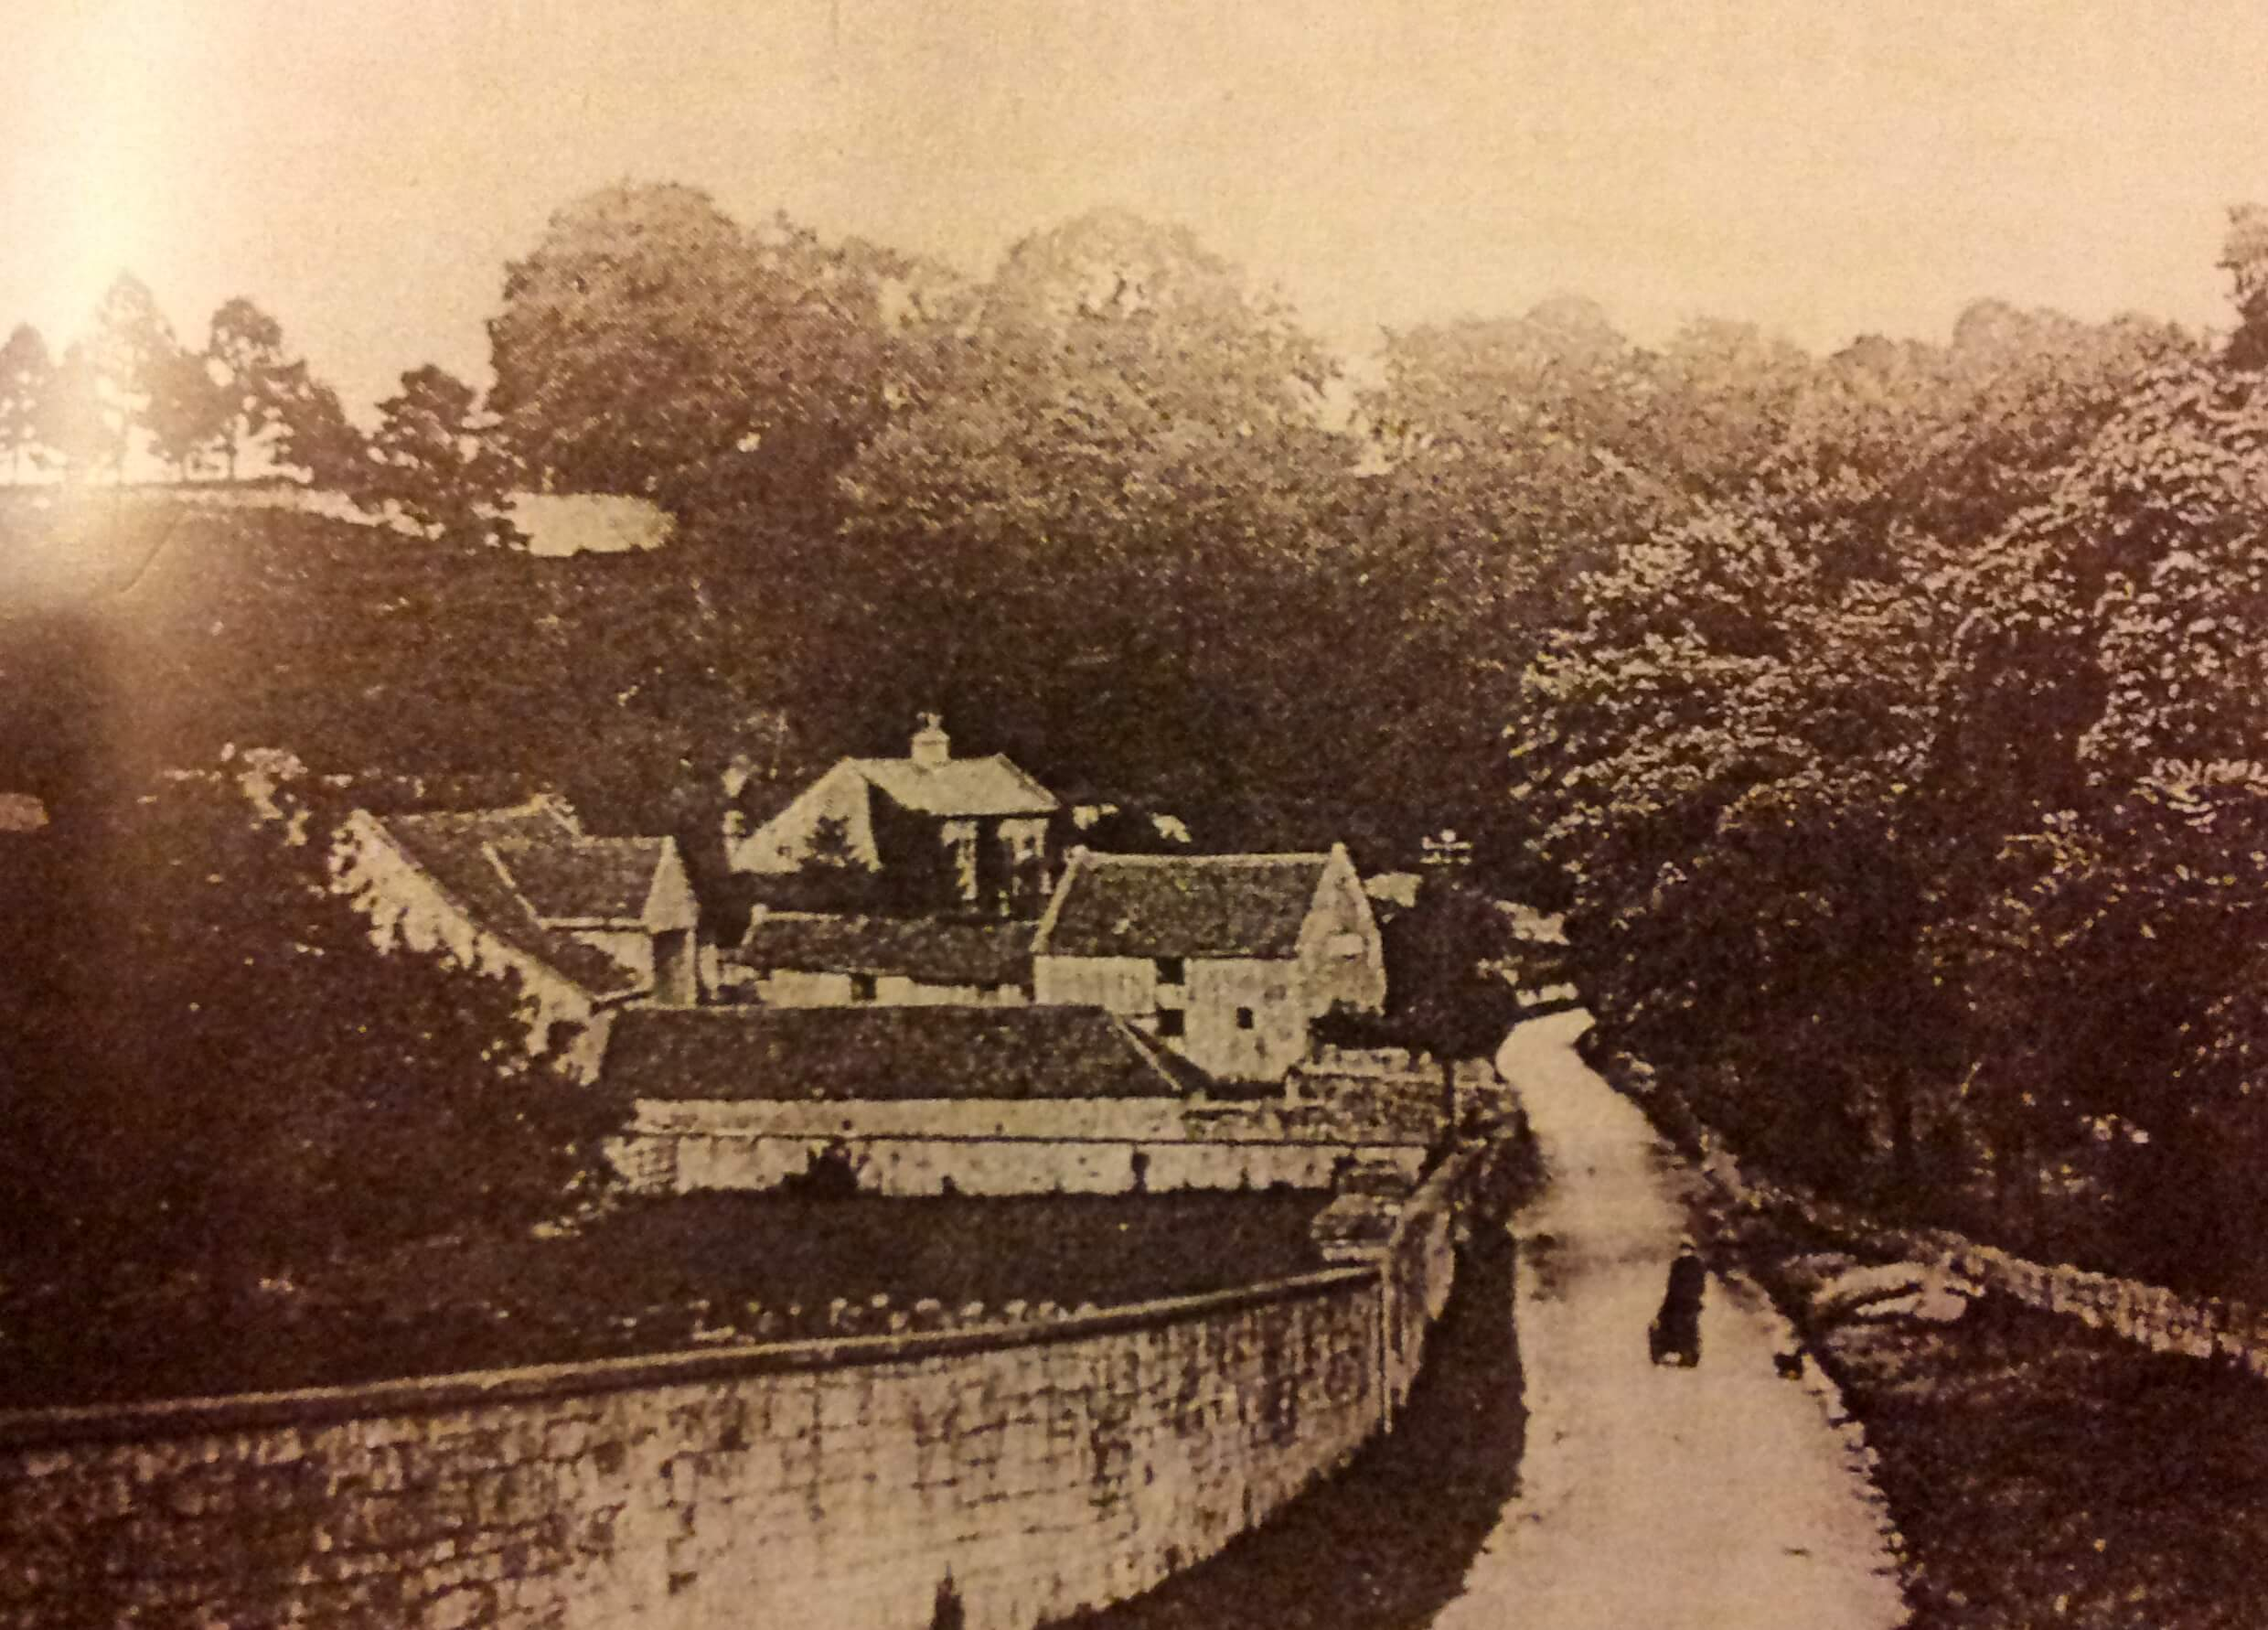 Summer Lane early 1900s